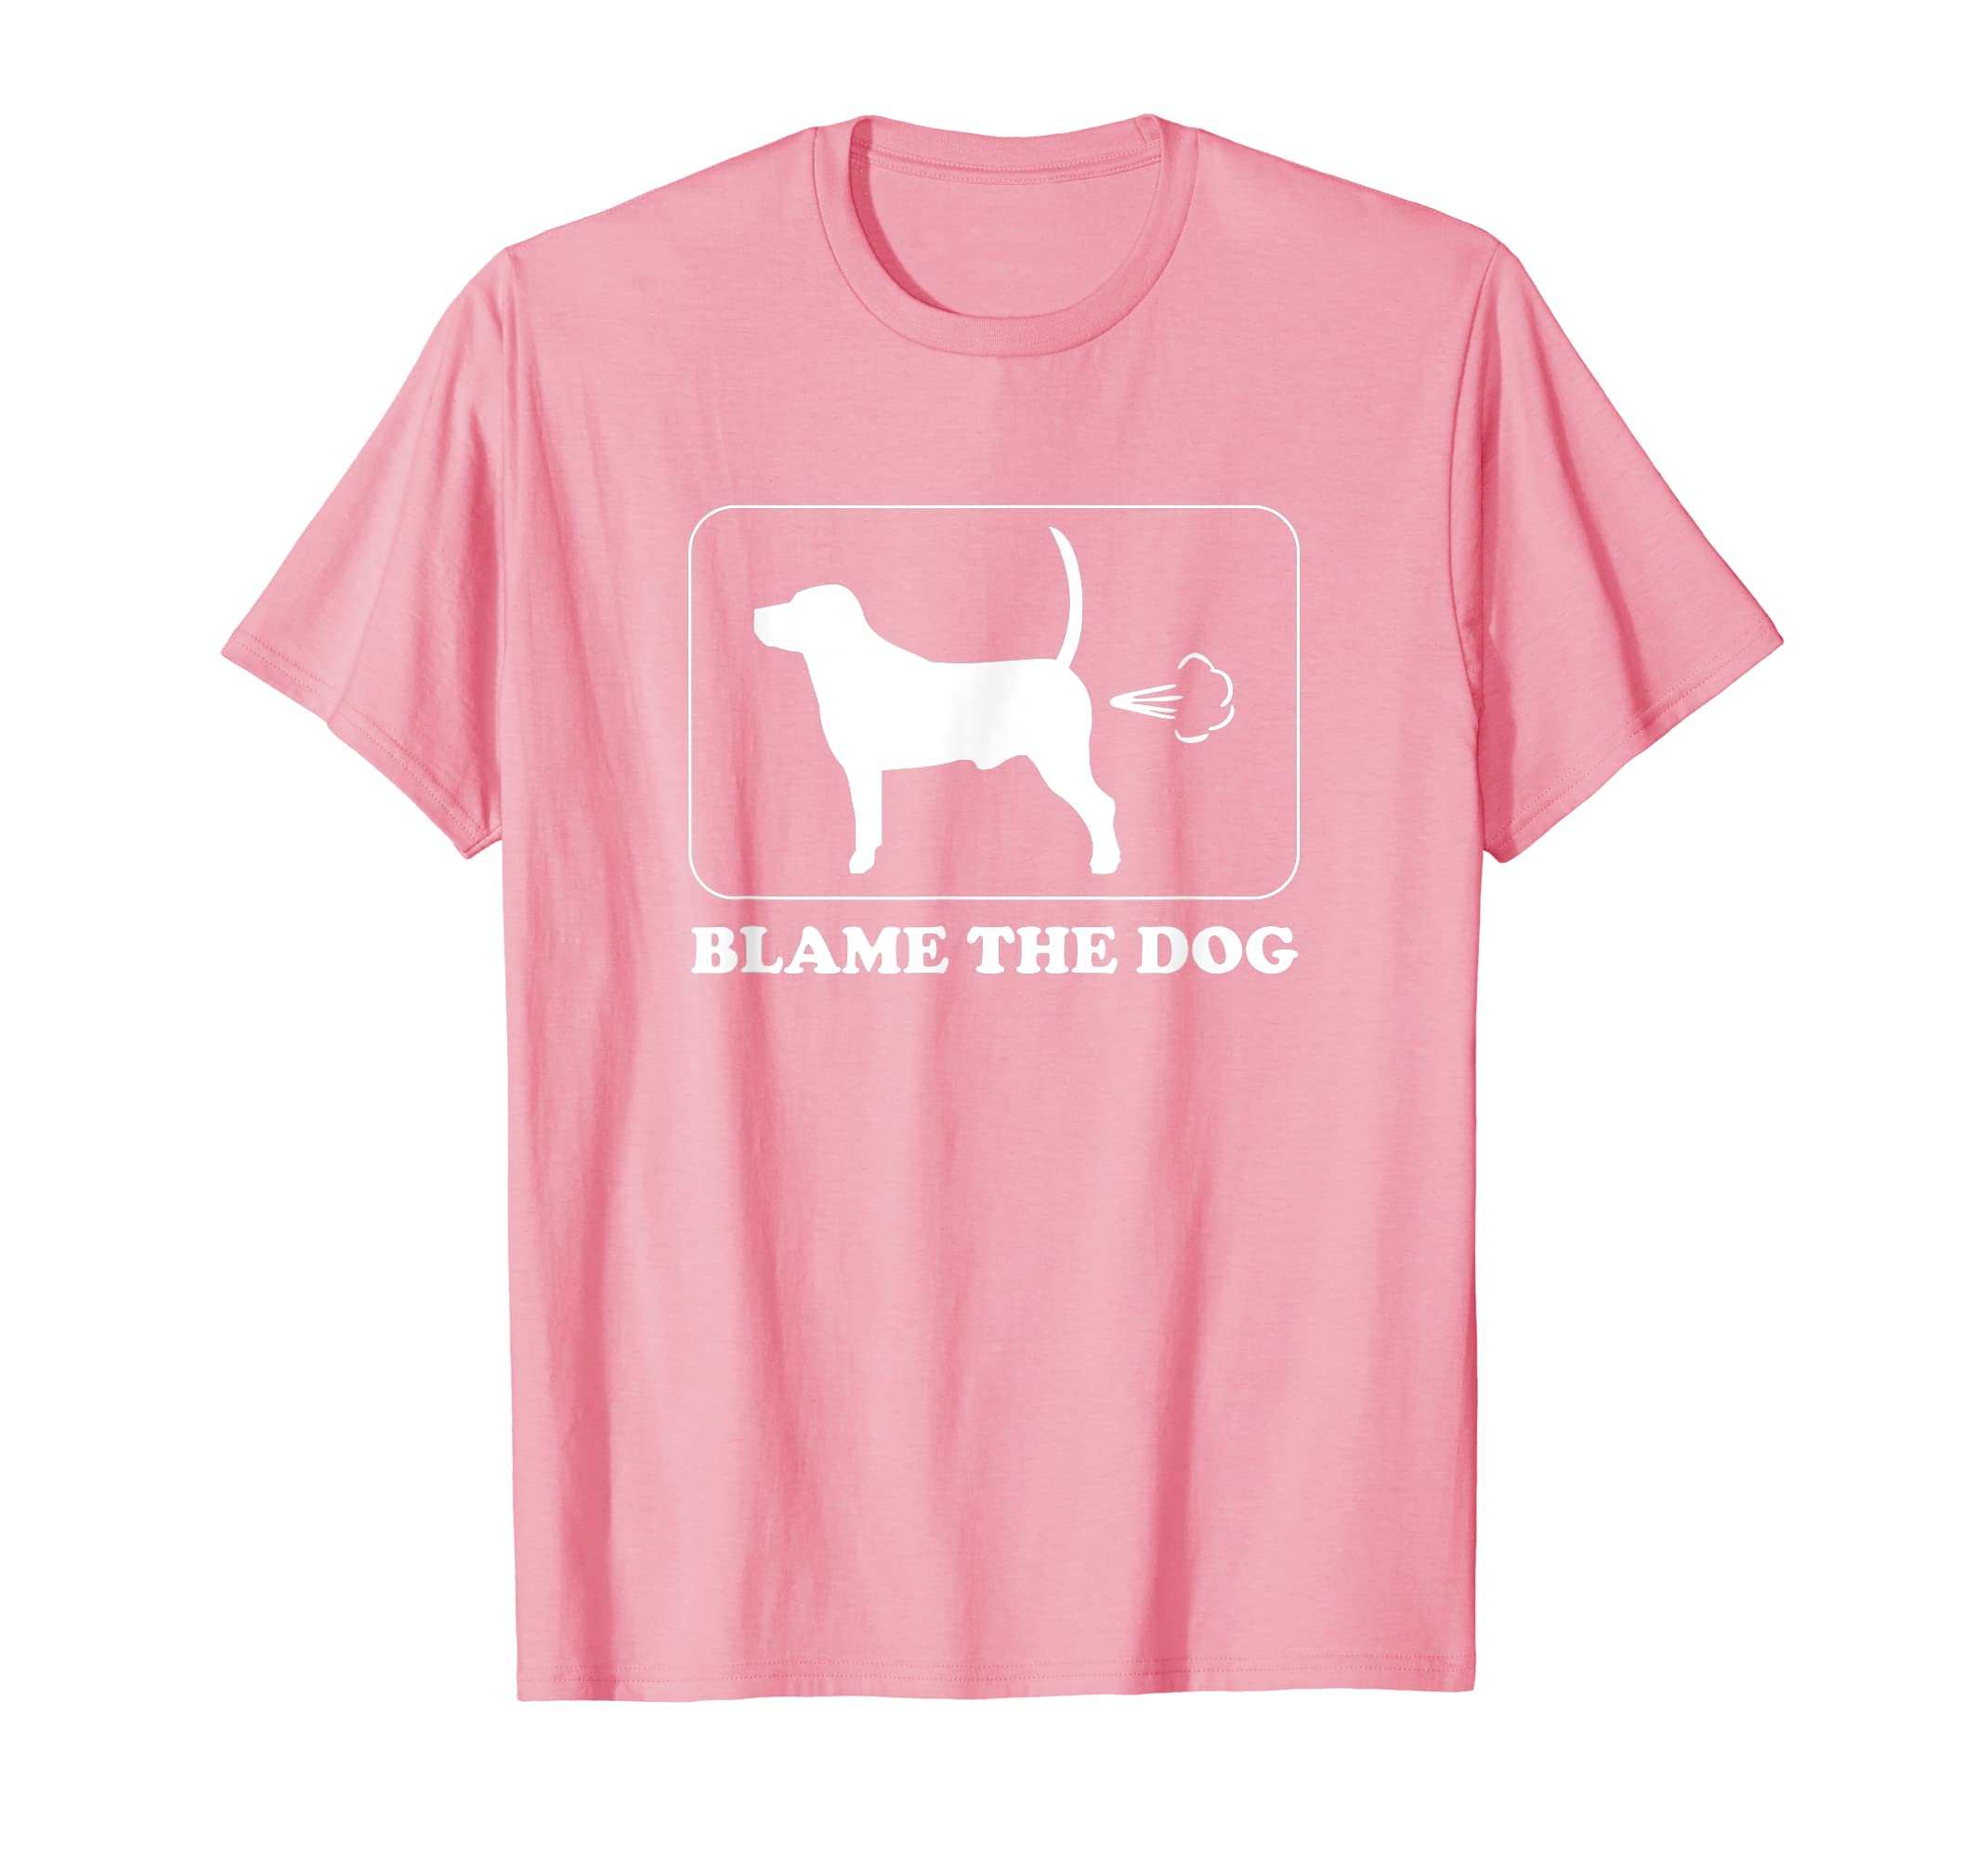 af33f9d610 Amazon.com: Blame the Dog - Funny Dog Fart - Dog Owner T-Shirt: Clothing